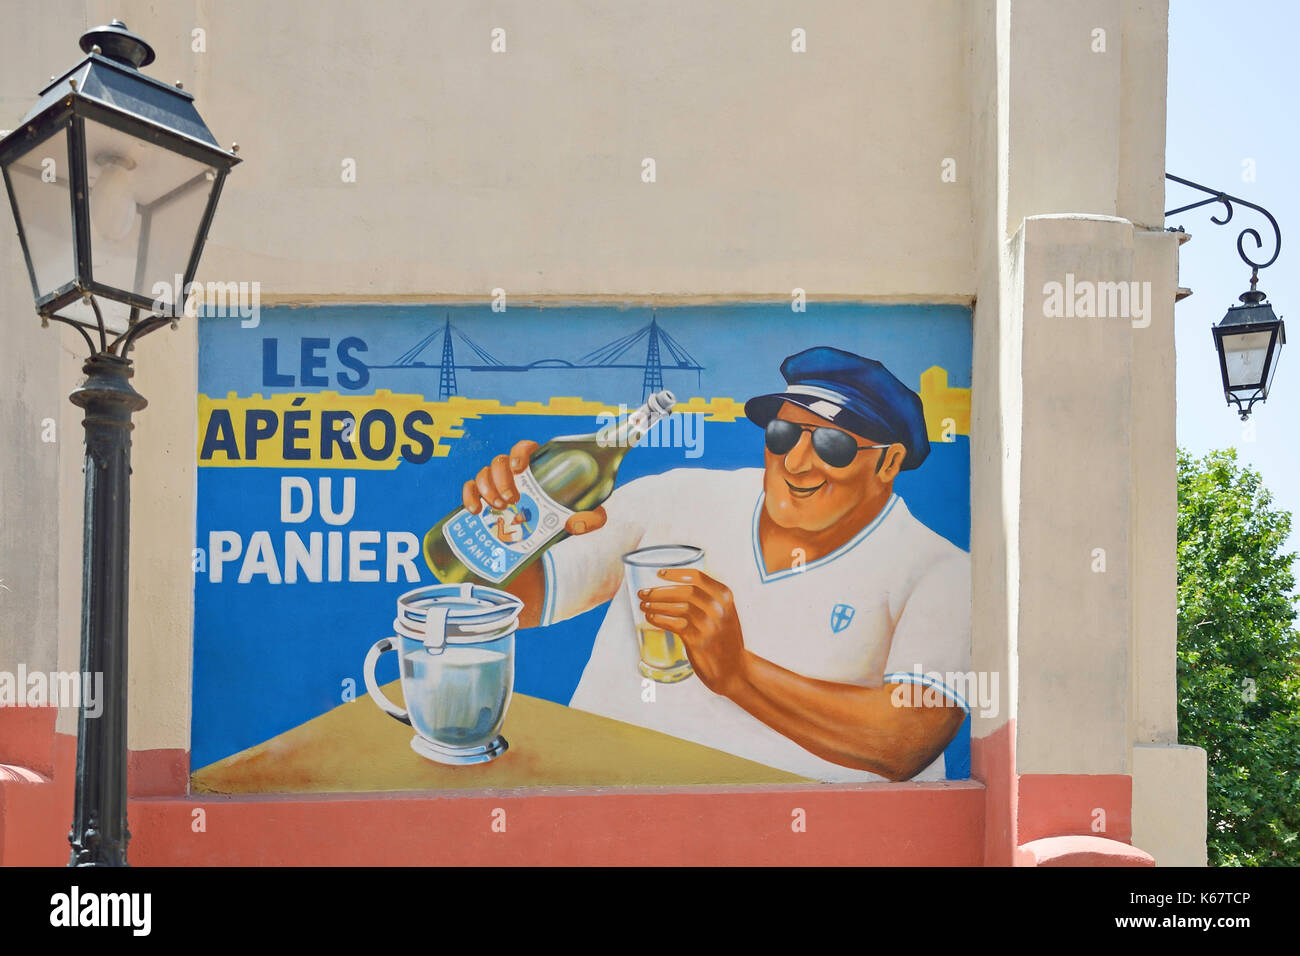 Painted advertisement on wall in Old Panier Quarter, Marseille, Bouches-du-Rhône, Provence-Alpes-Côte d'Azur, France - Stock Image